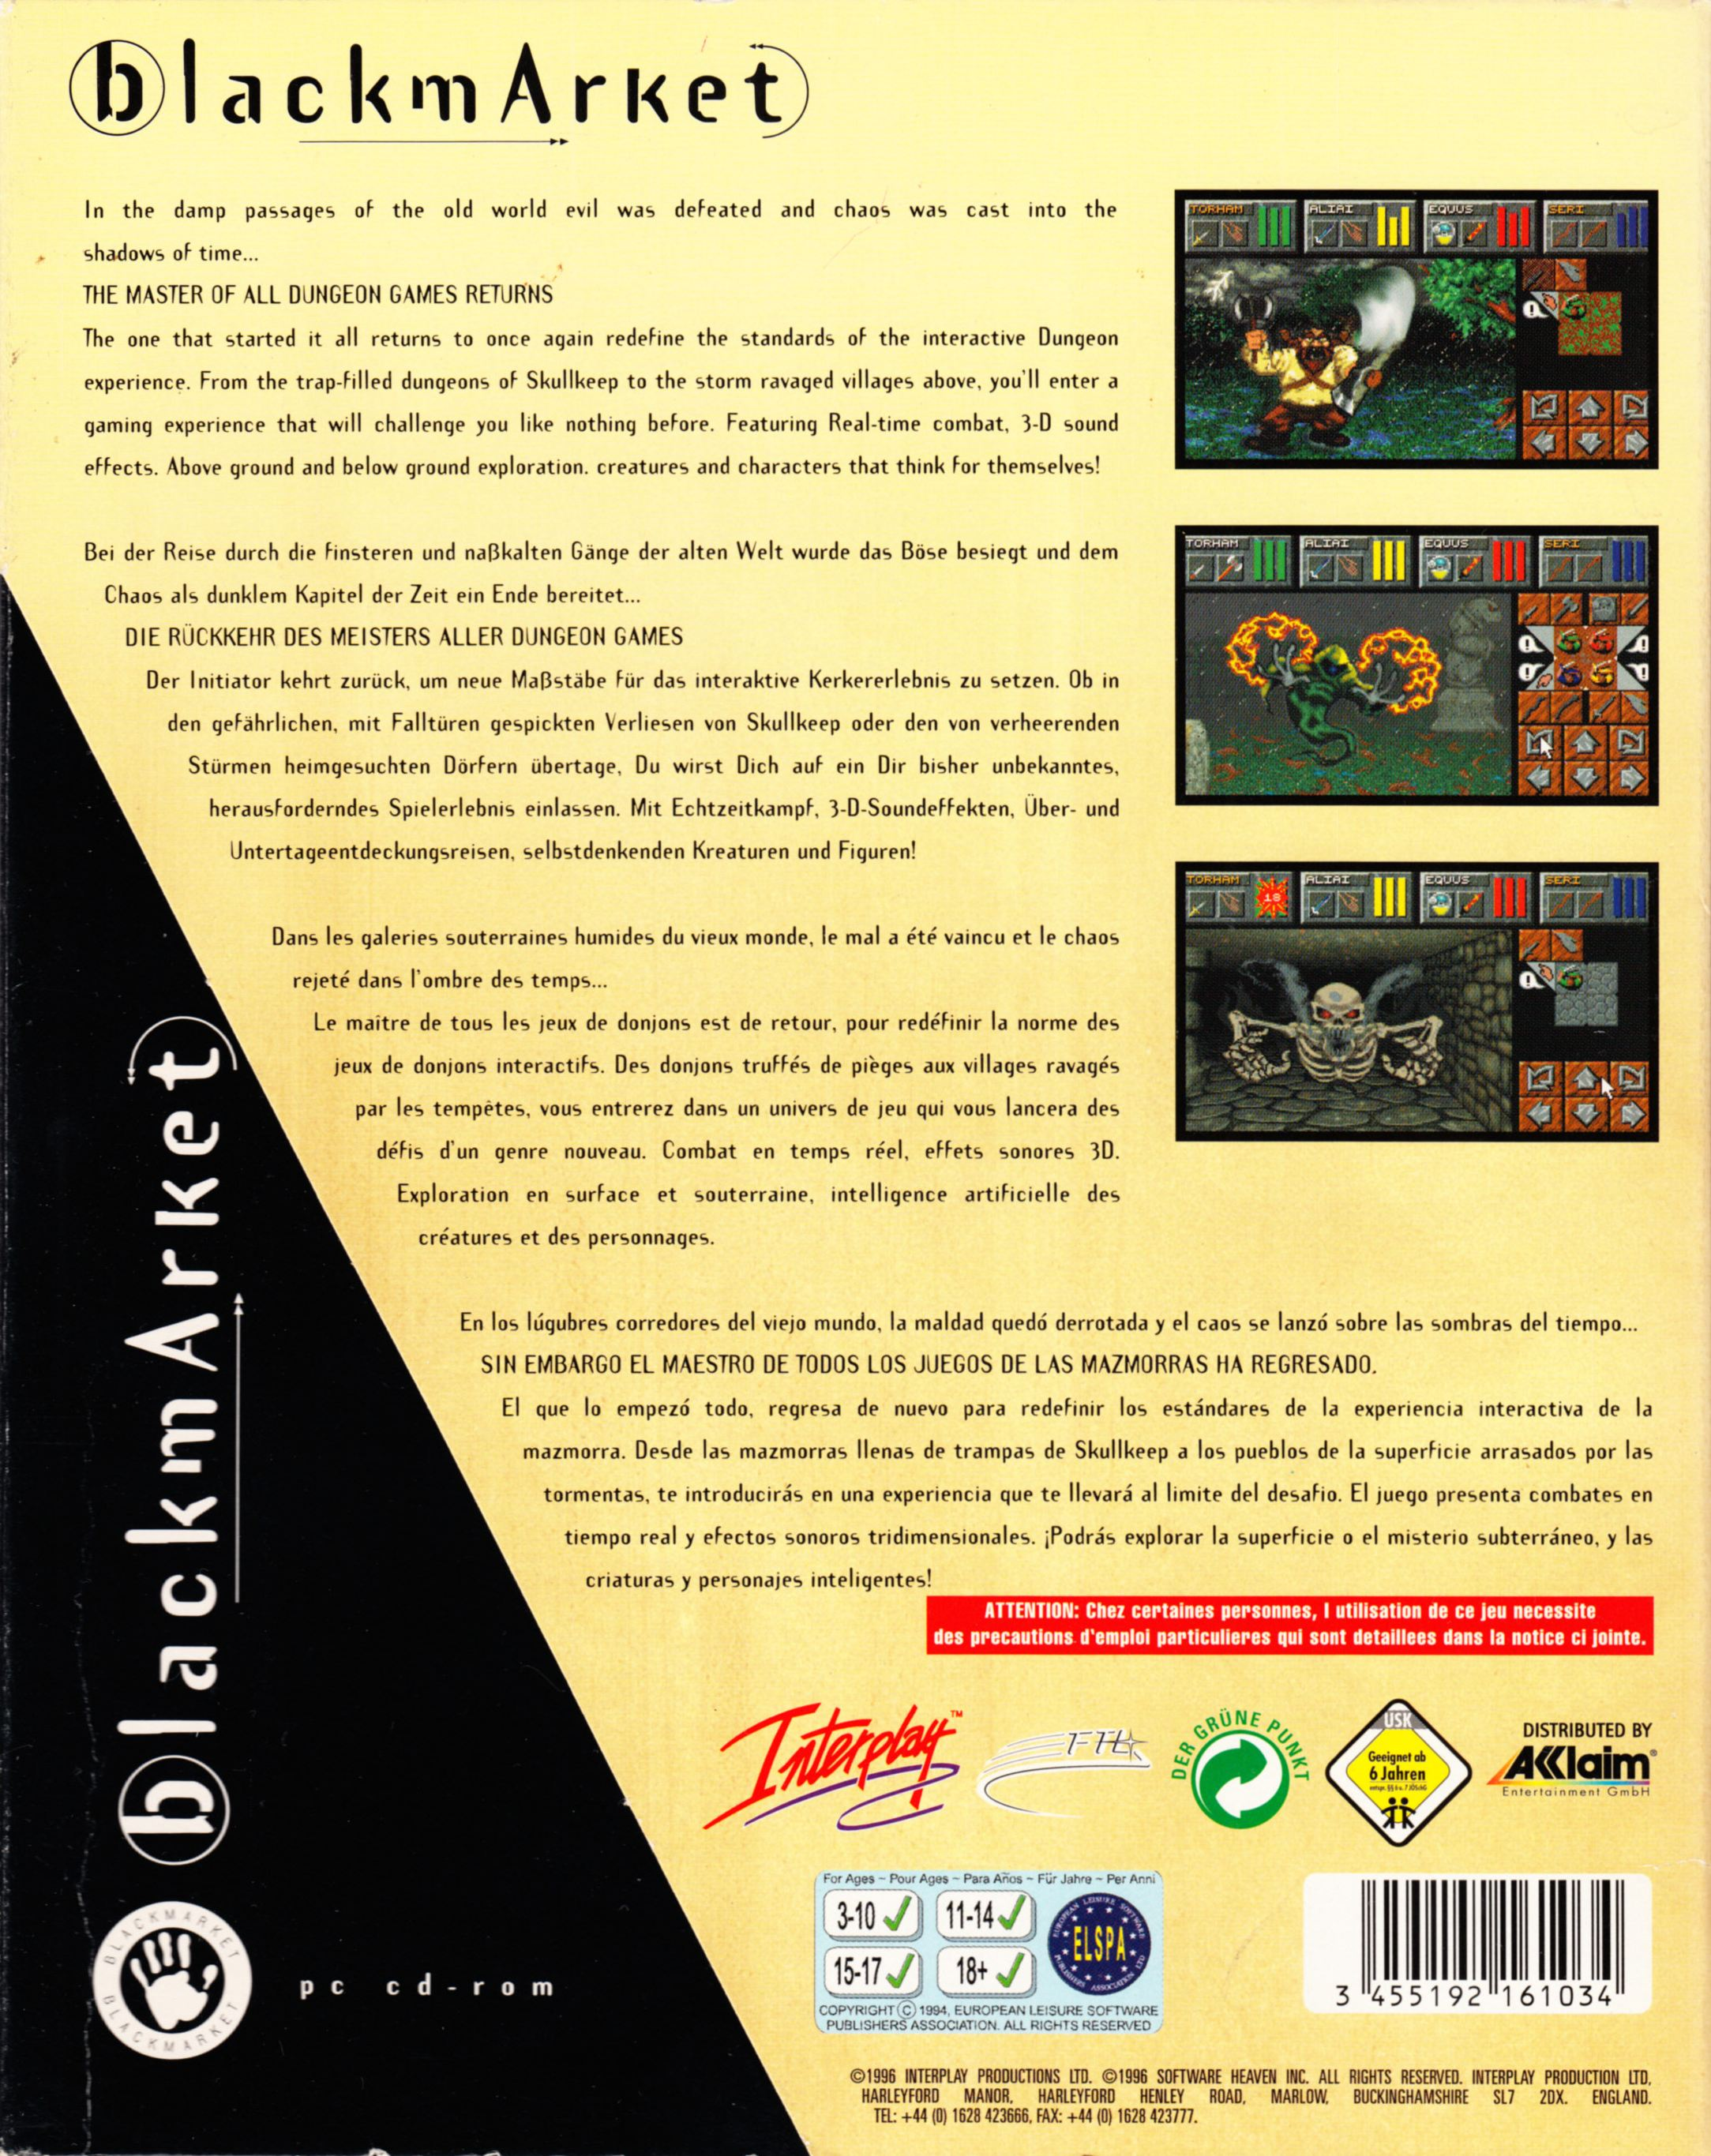 Game - Dungeon Master II - DE - PC - Blackmarket With Manual - Box With Sleeve - Back - Scan